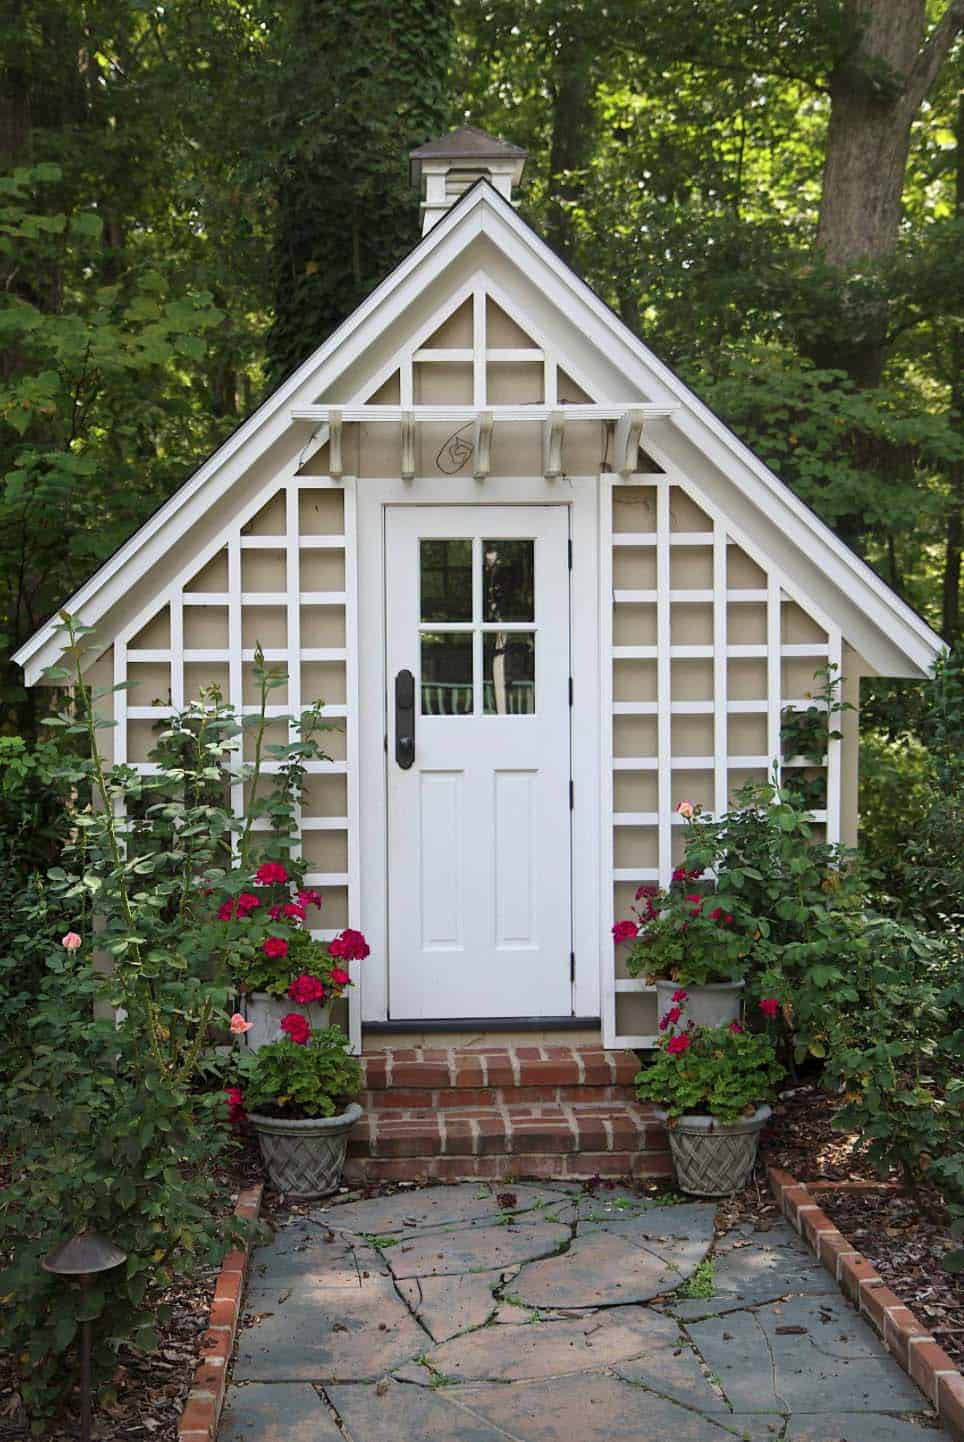 a very cute she shed with a trellis completely covering the front